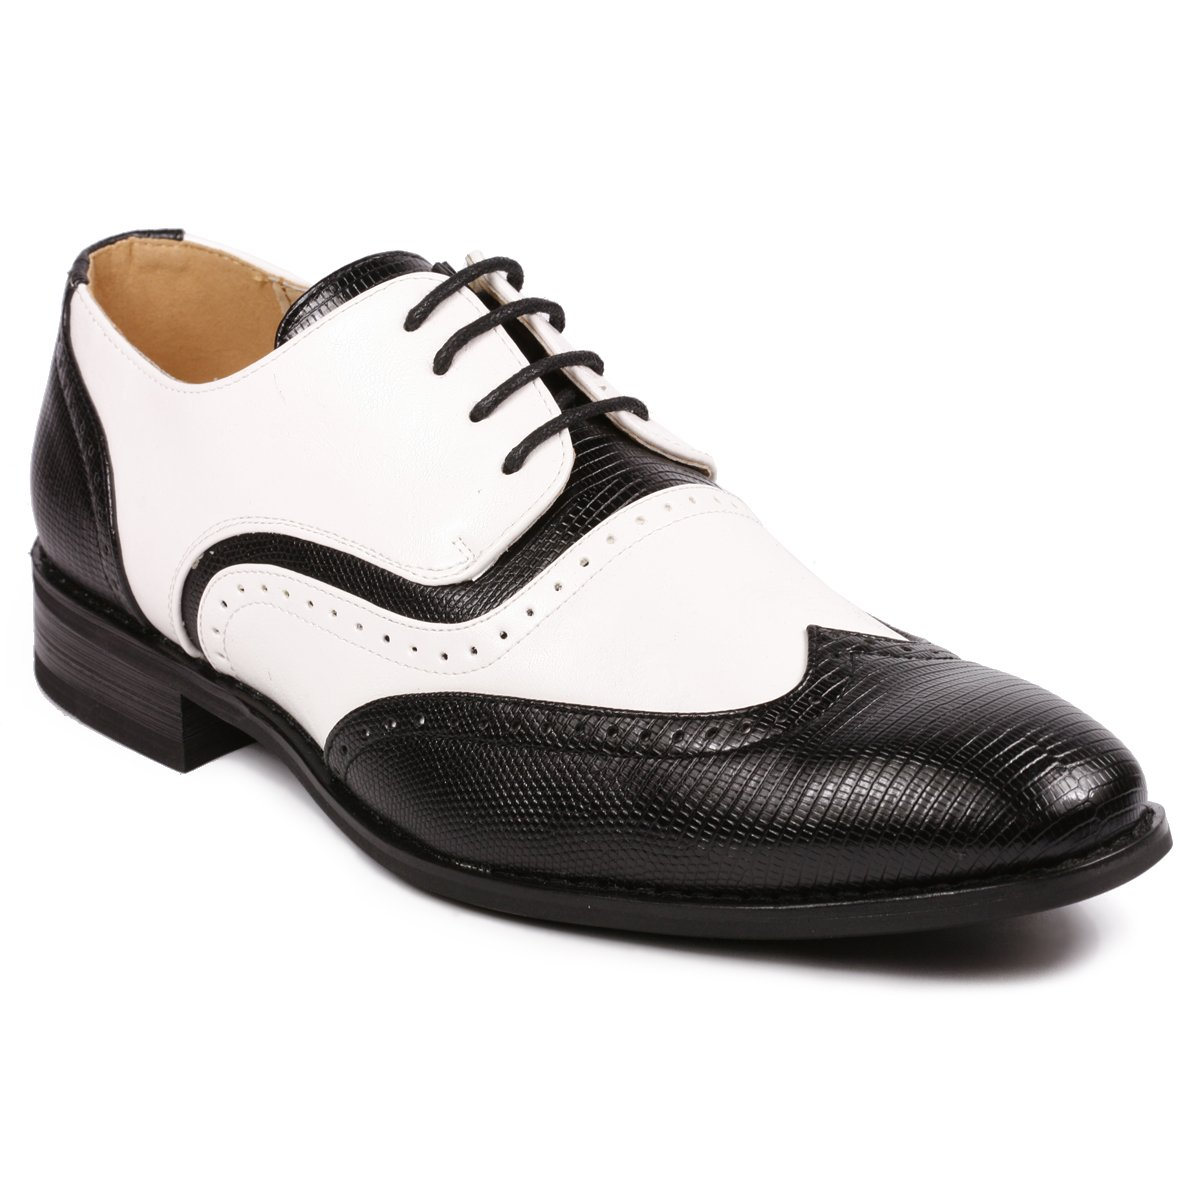 Retro Clothing for Men | Vintage Men's Fashion Metrocharm MC113 Mens Wing Tip Perforated Lace Up Oxford Dress Shoes $39.99 AT vintagedancer.com